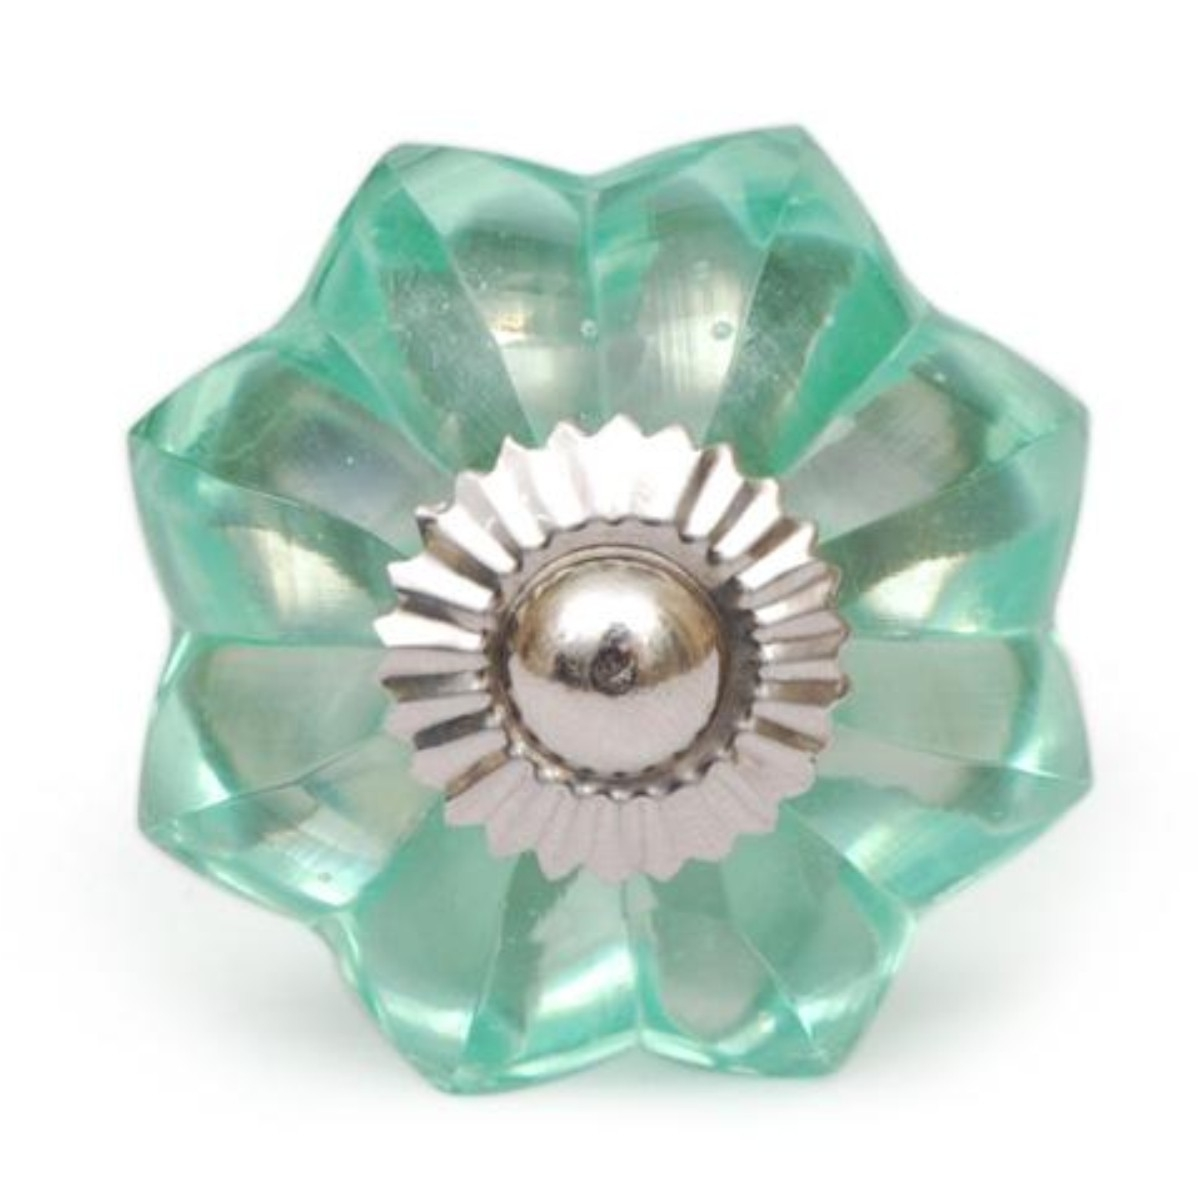 sea glass door knobs photo - 3